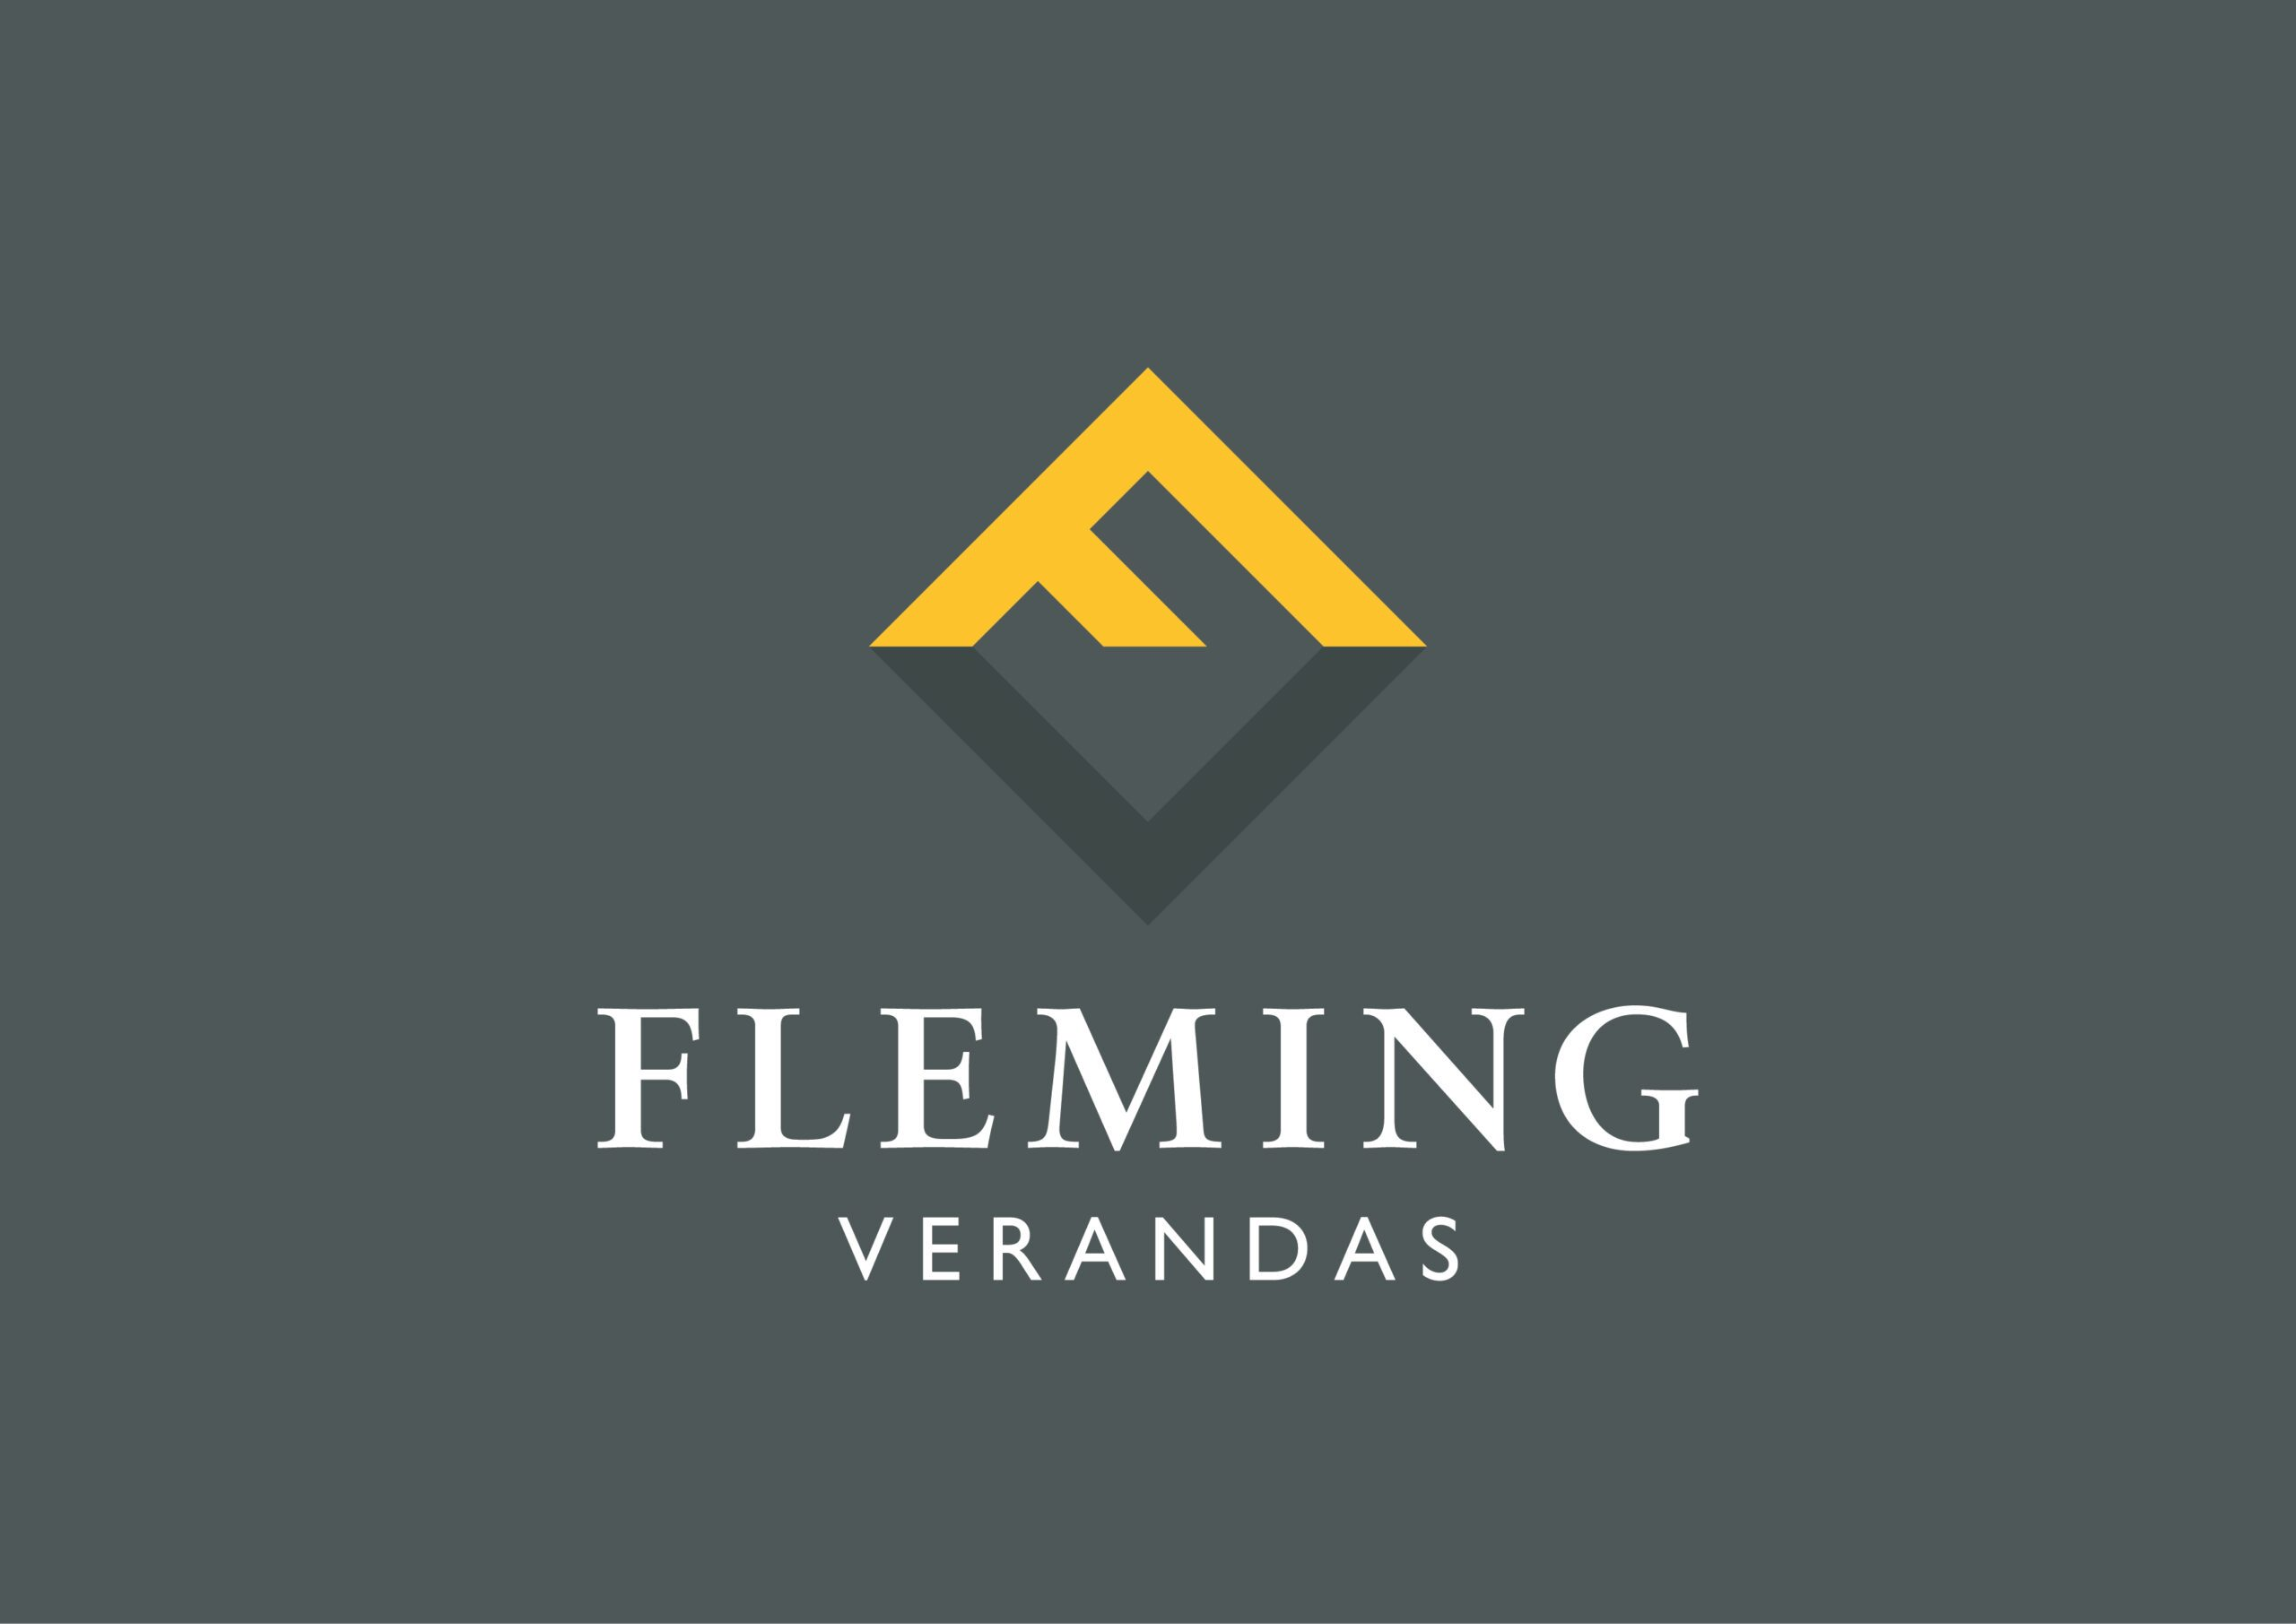 Fleming Verandas – Glass rooms, Verandas and Awnings